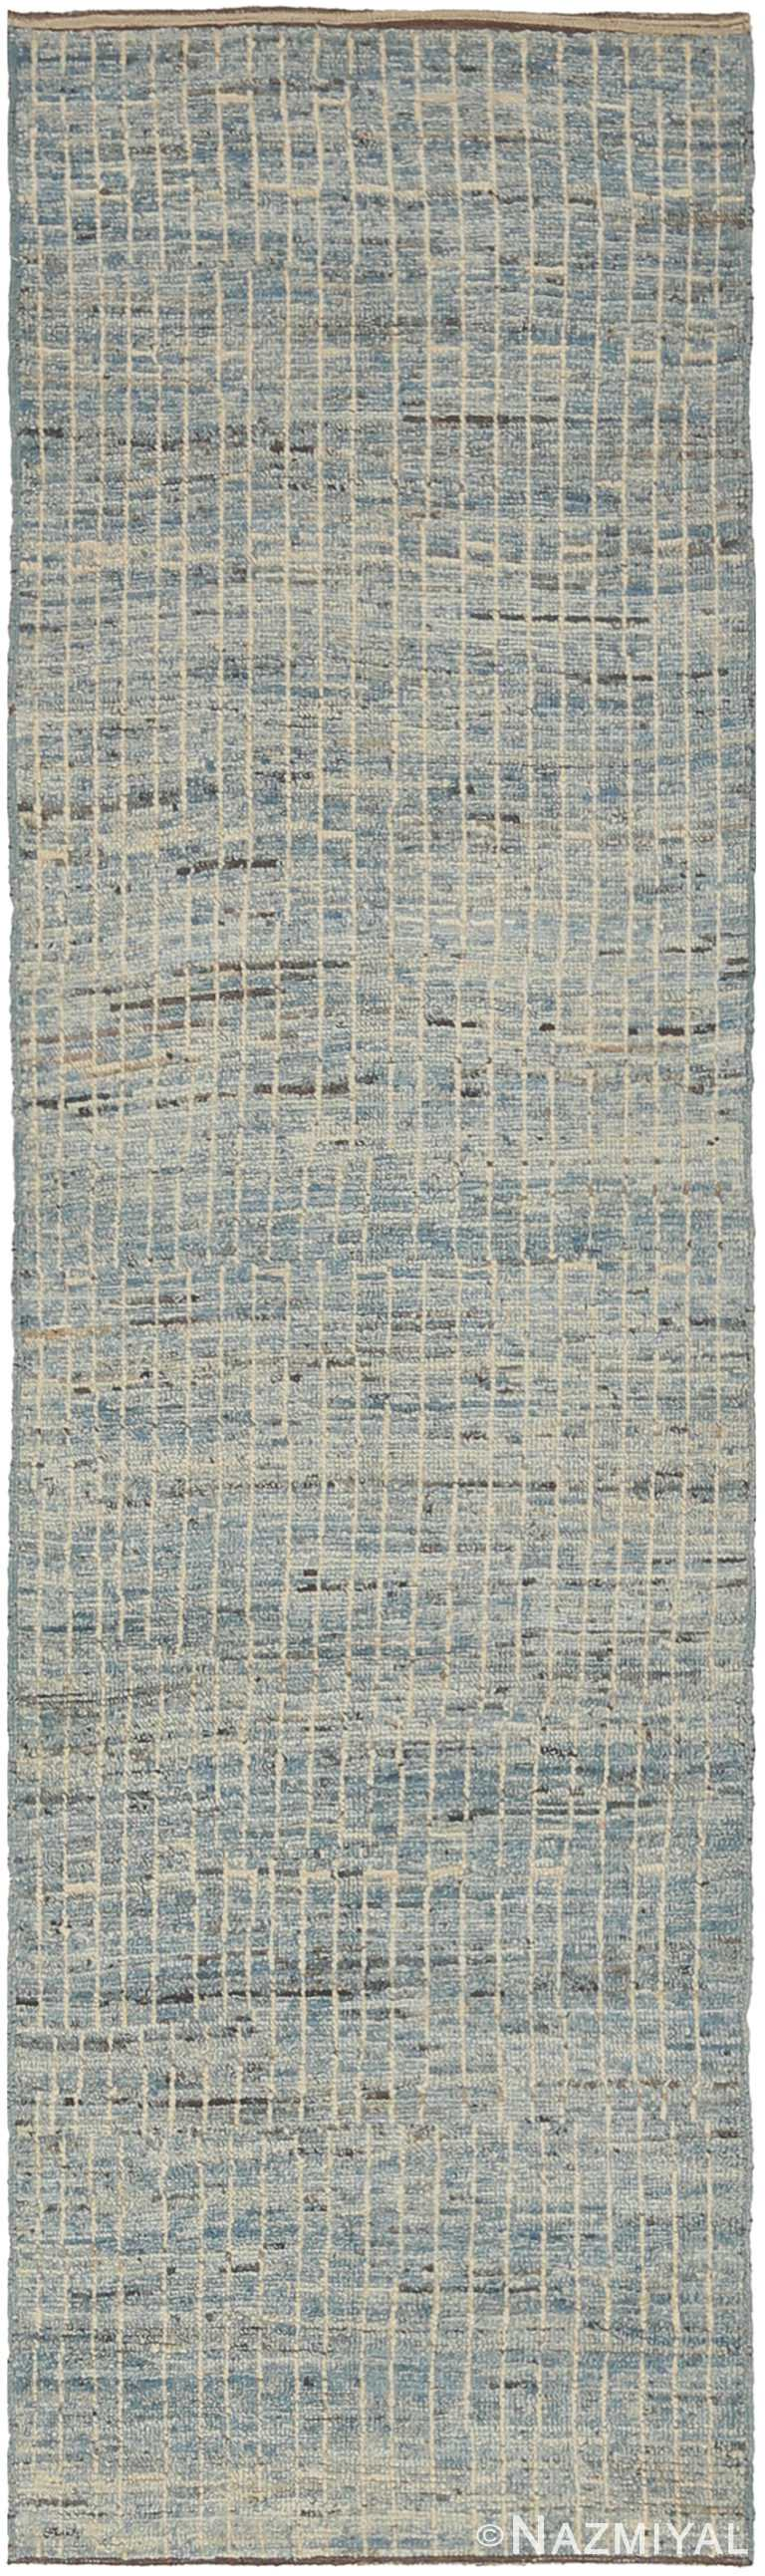 Light Blue Modern Moroccan Style Runner Rug #60326 by Nazmiyal NYC